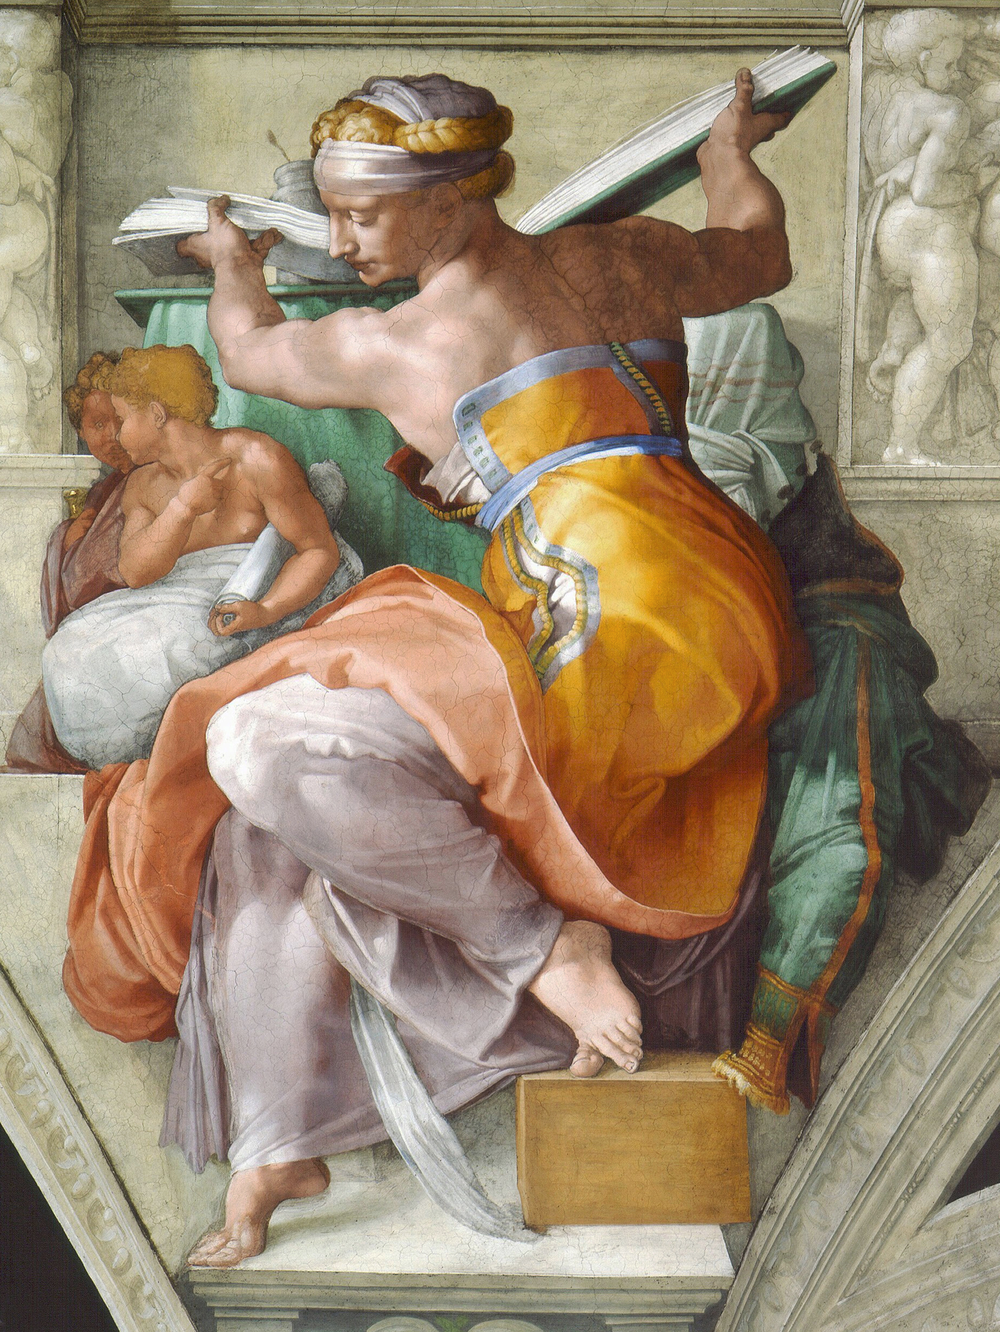 Michelangelo_-_The_Libyan_Sibyl_5x7.png